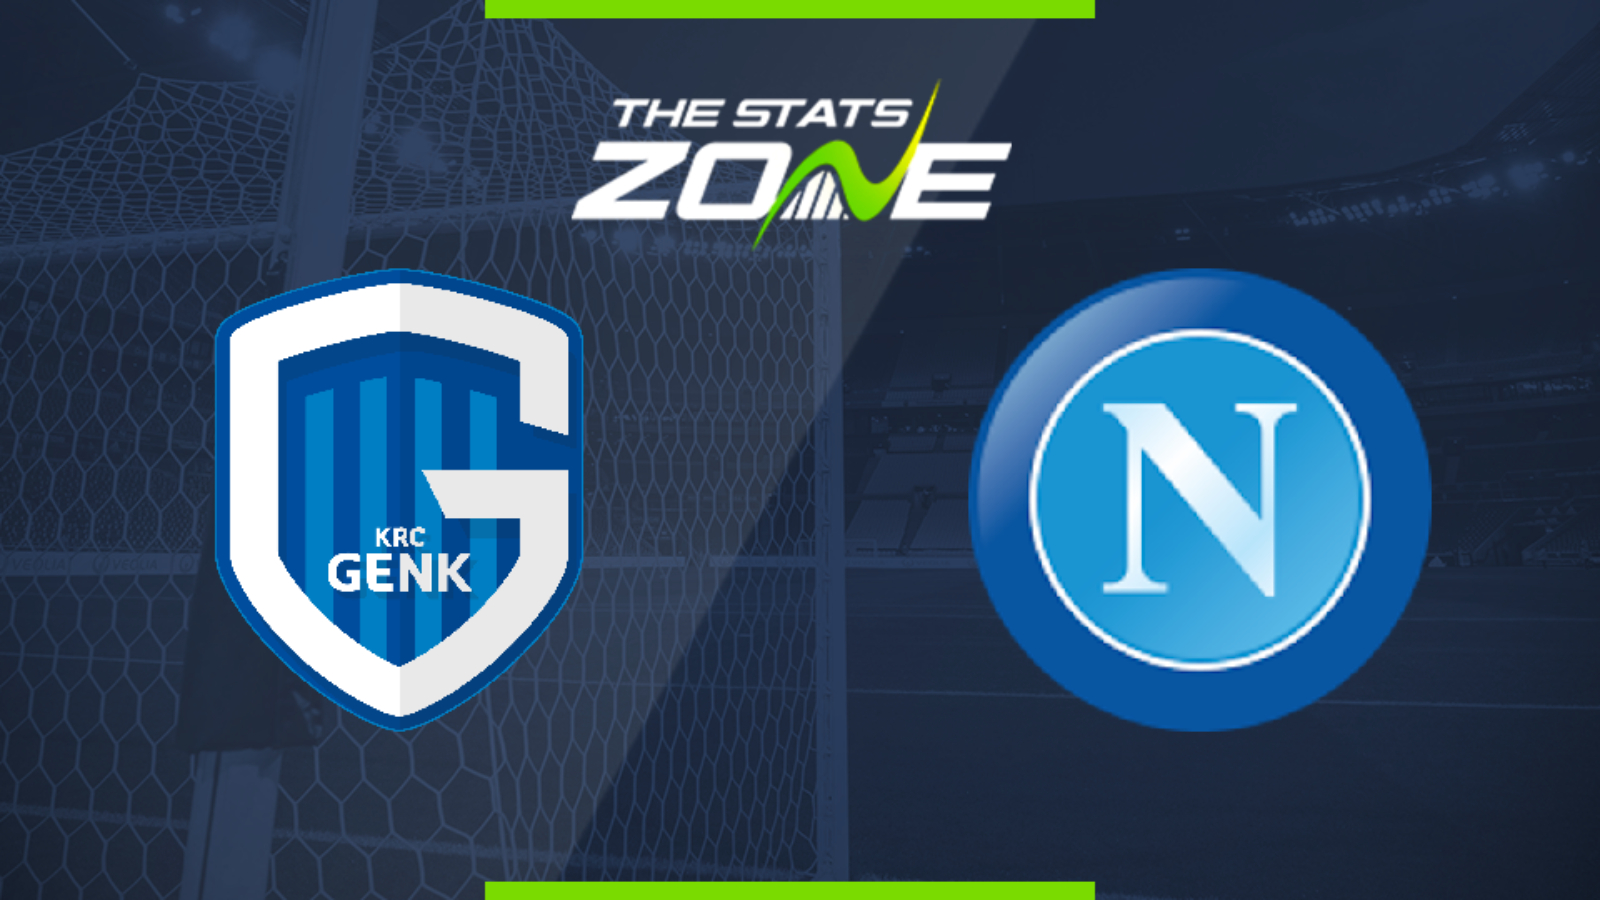 2019 20 Uefa Champions League Genk Vs Napoli Preview